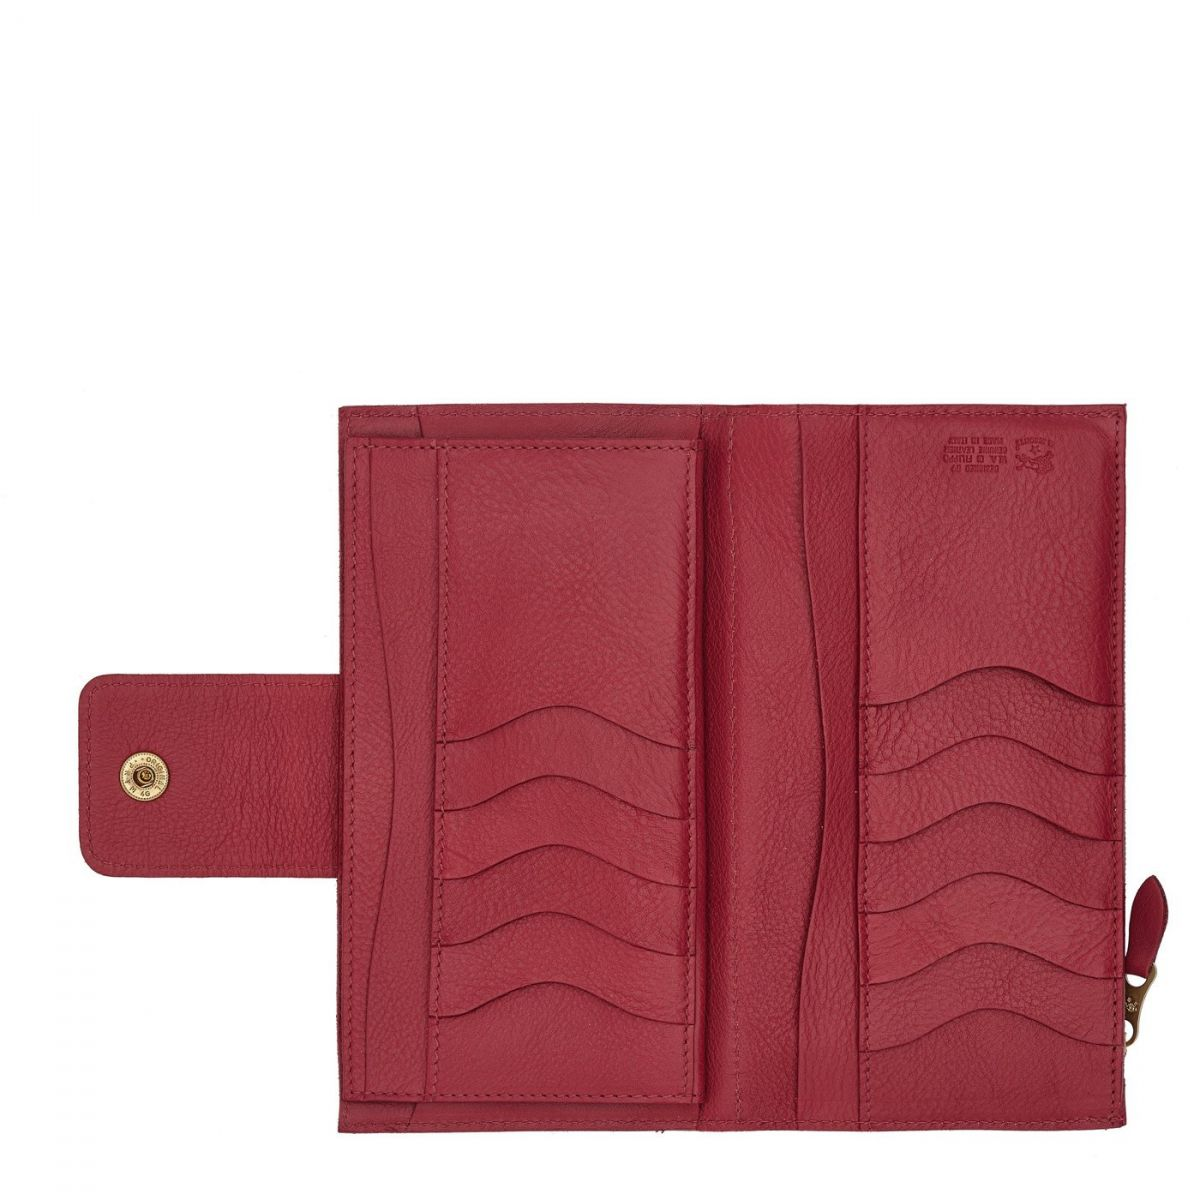 Women's Continental Wallet  in Cowhide Leather SCW007 color Sumac | Details